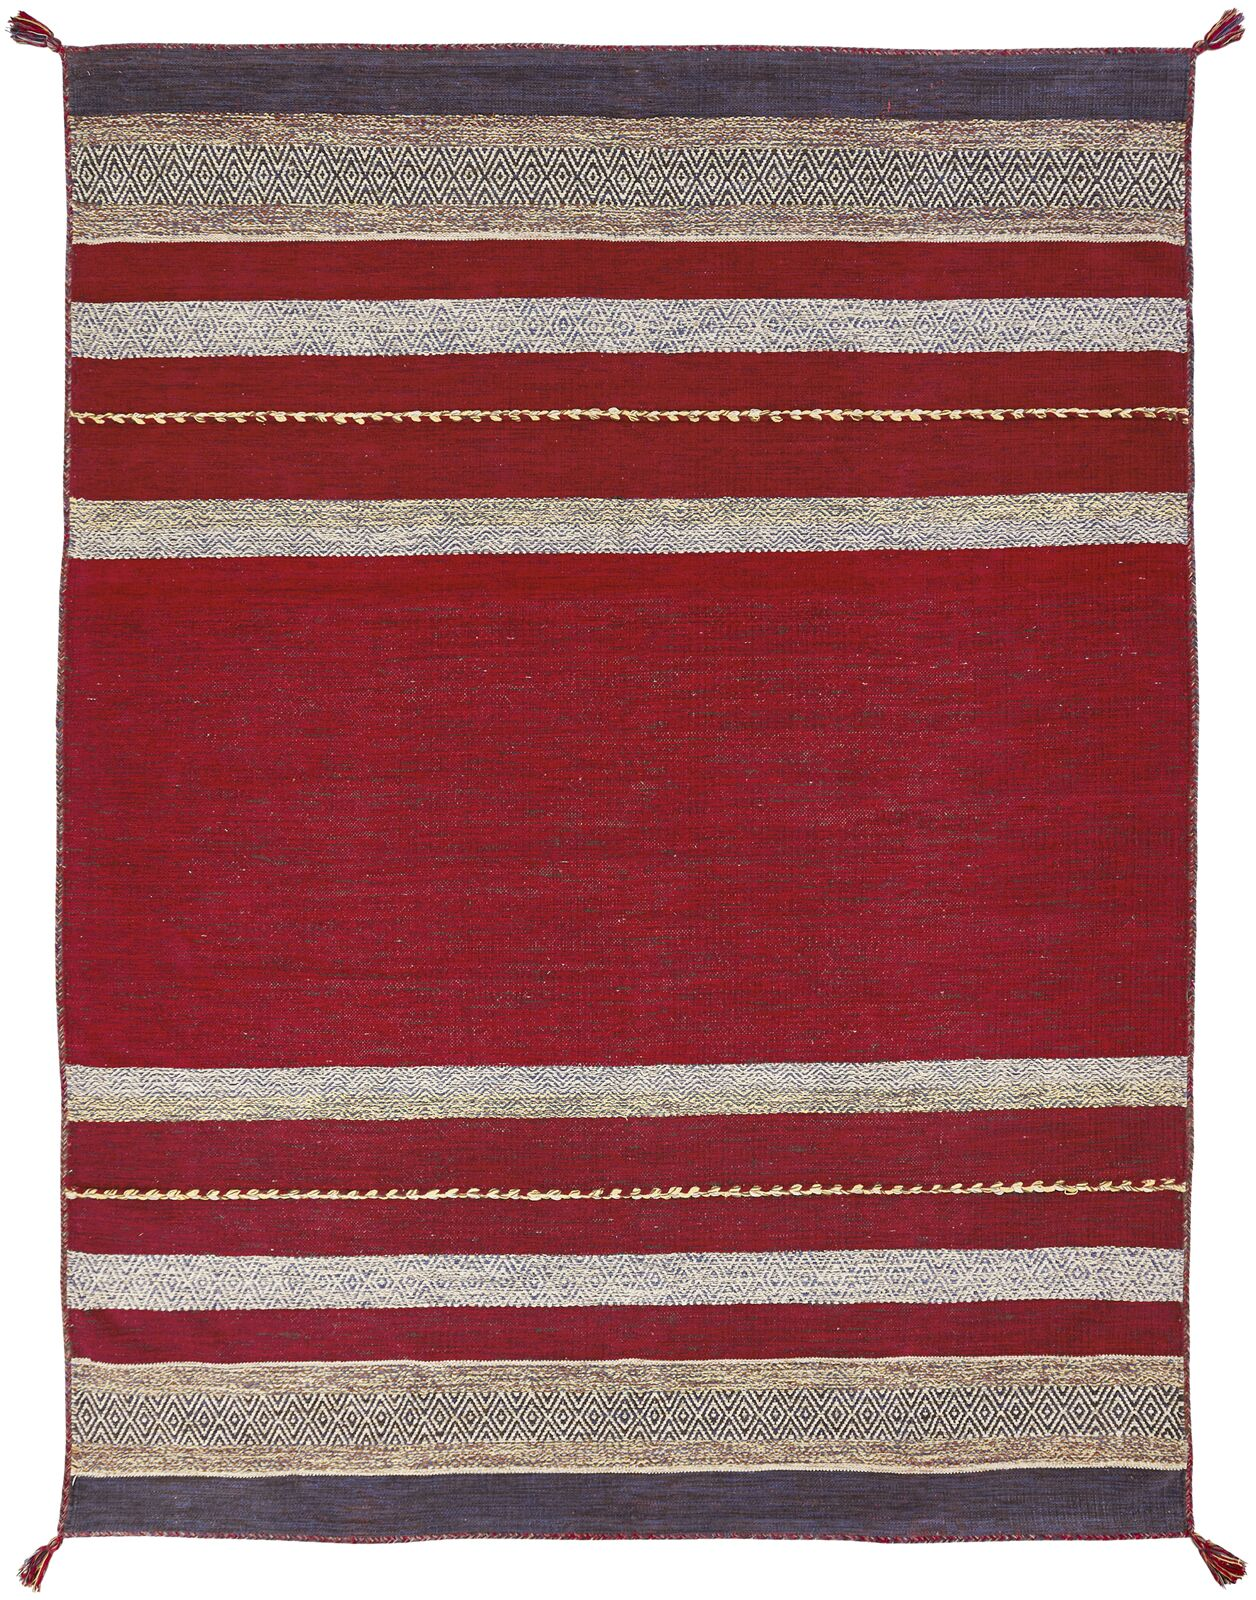 Gueye Hand Knotted Cotton Red Area Rug Rug Size: Rectangle 5'6